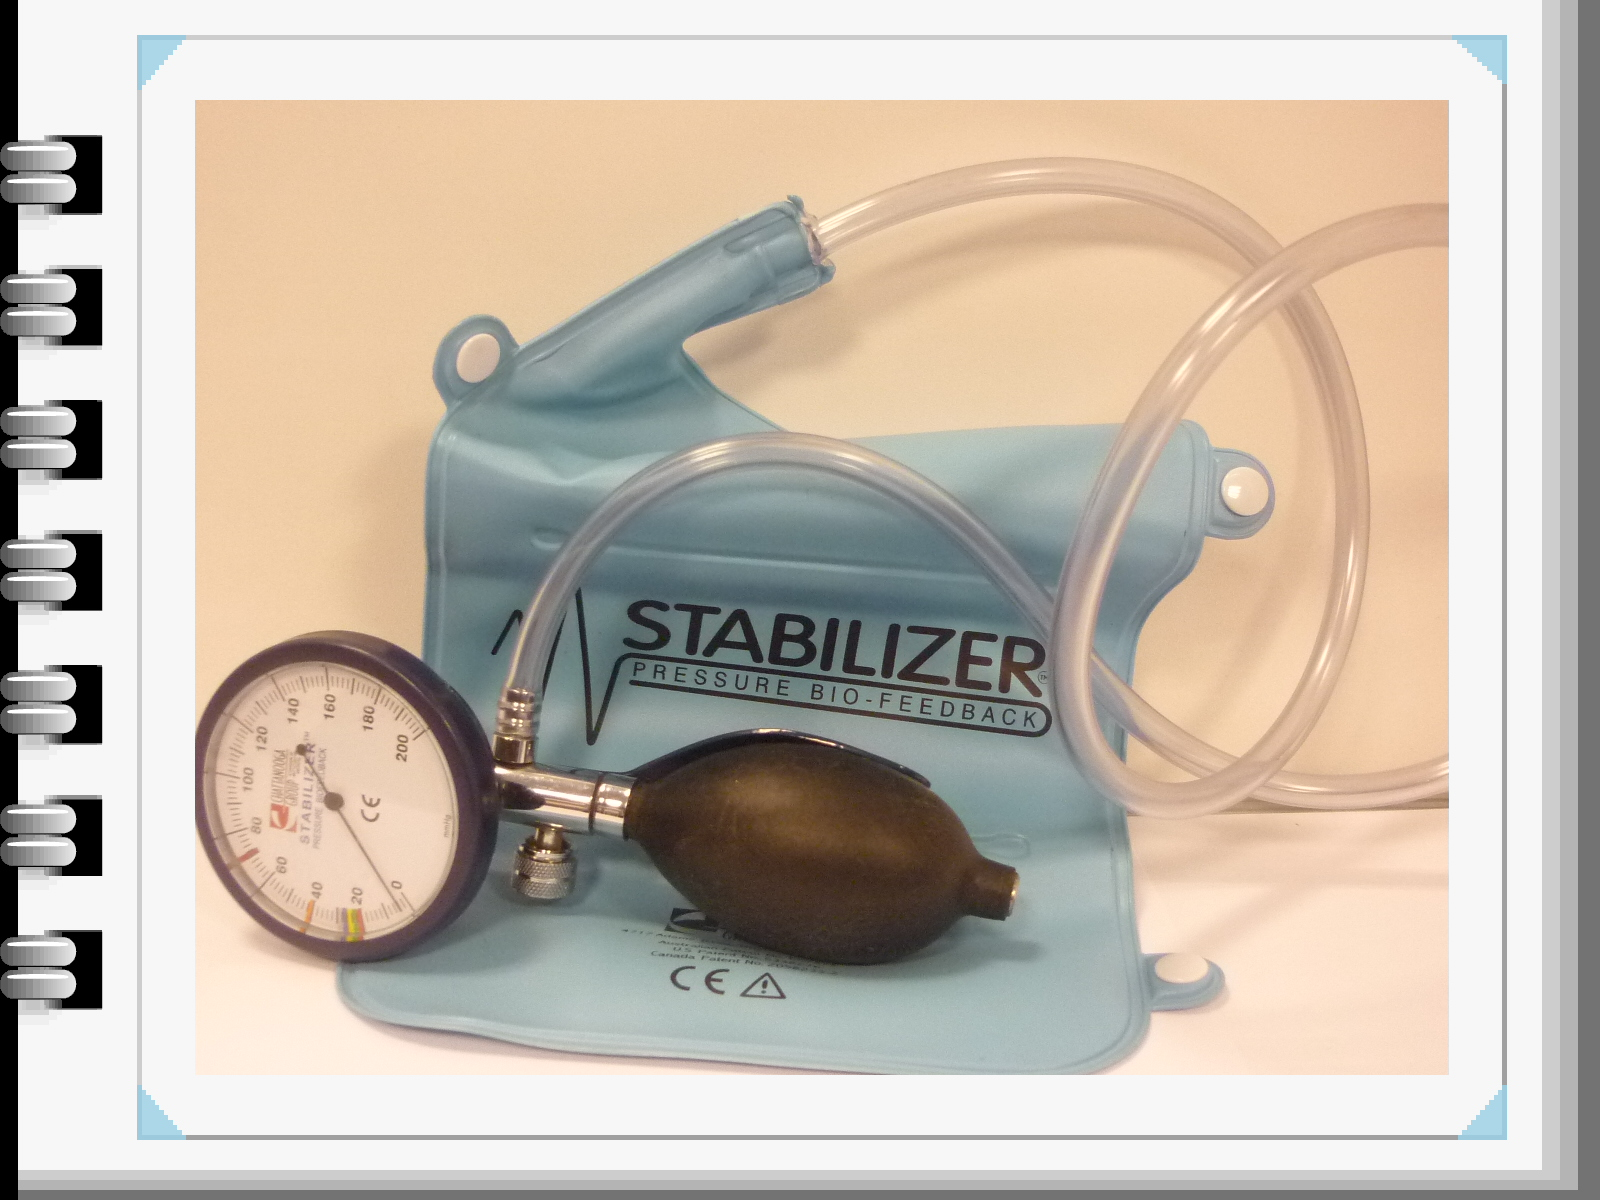 ALLproducts Pressure Biofeedback-stabilizer